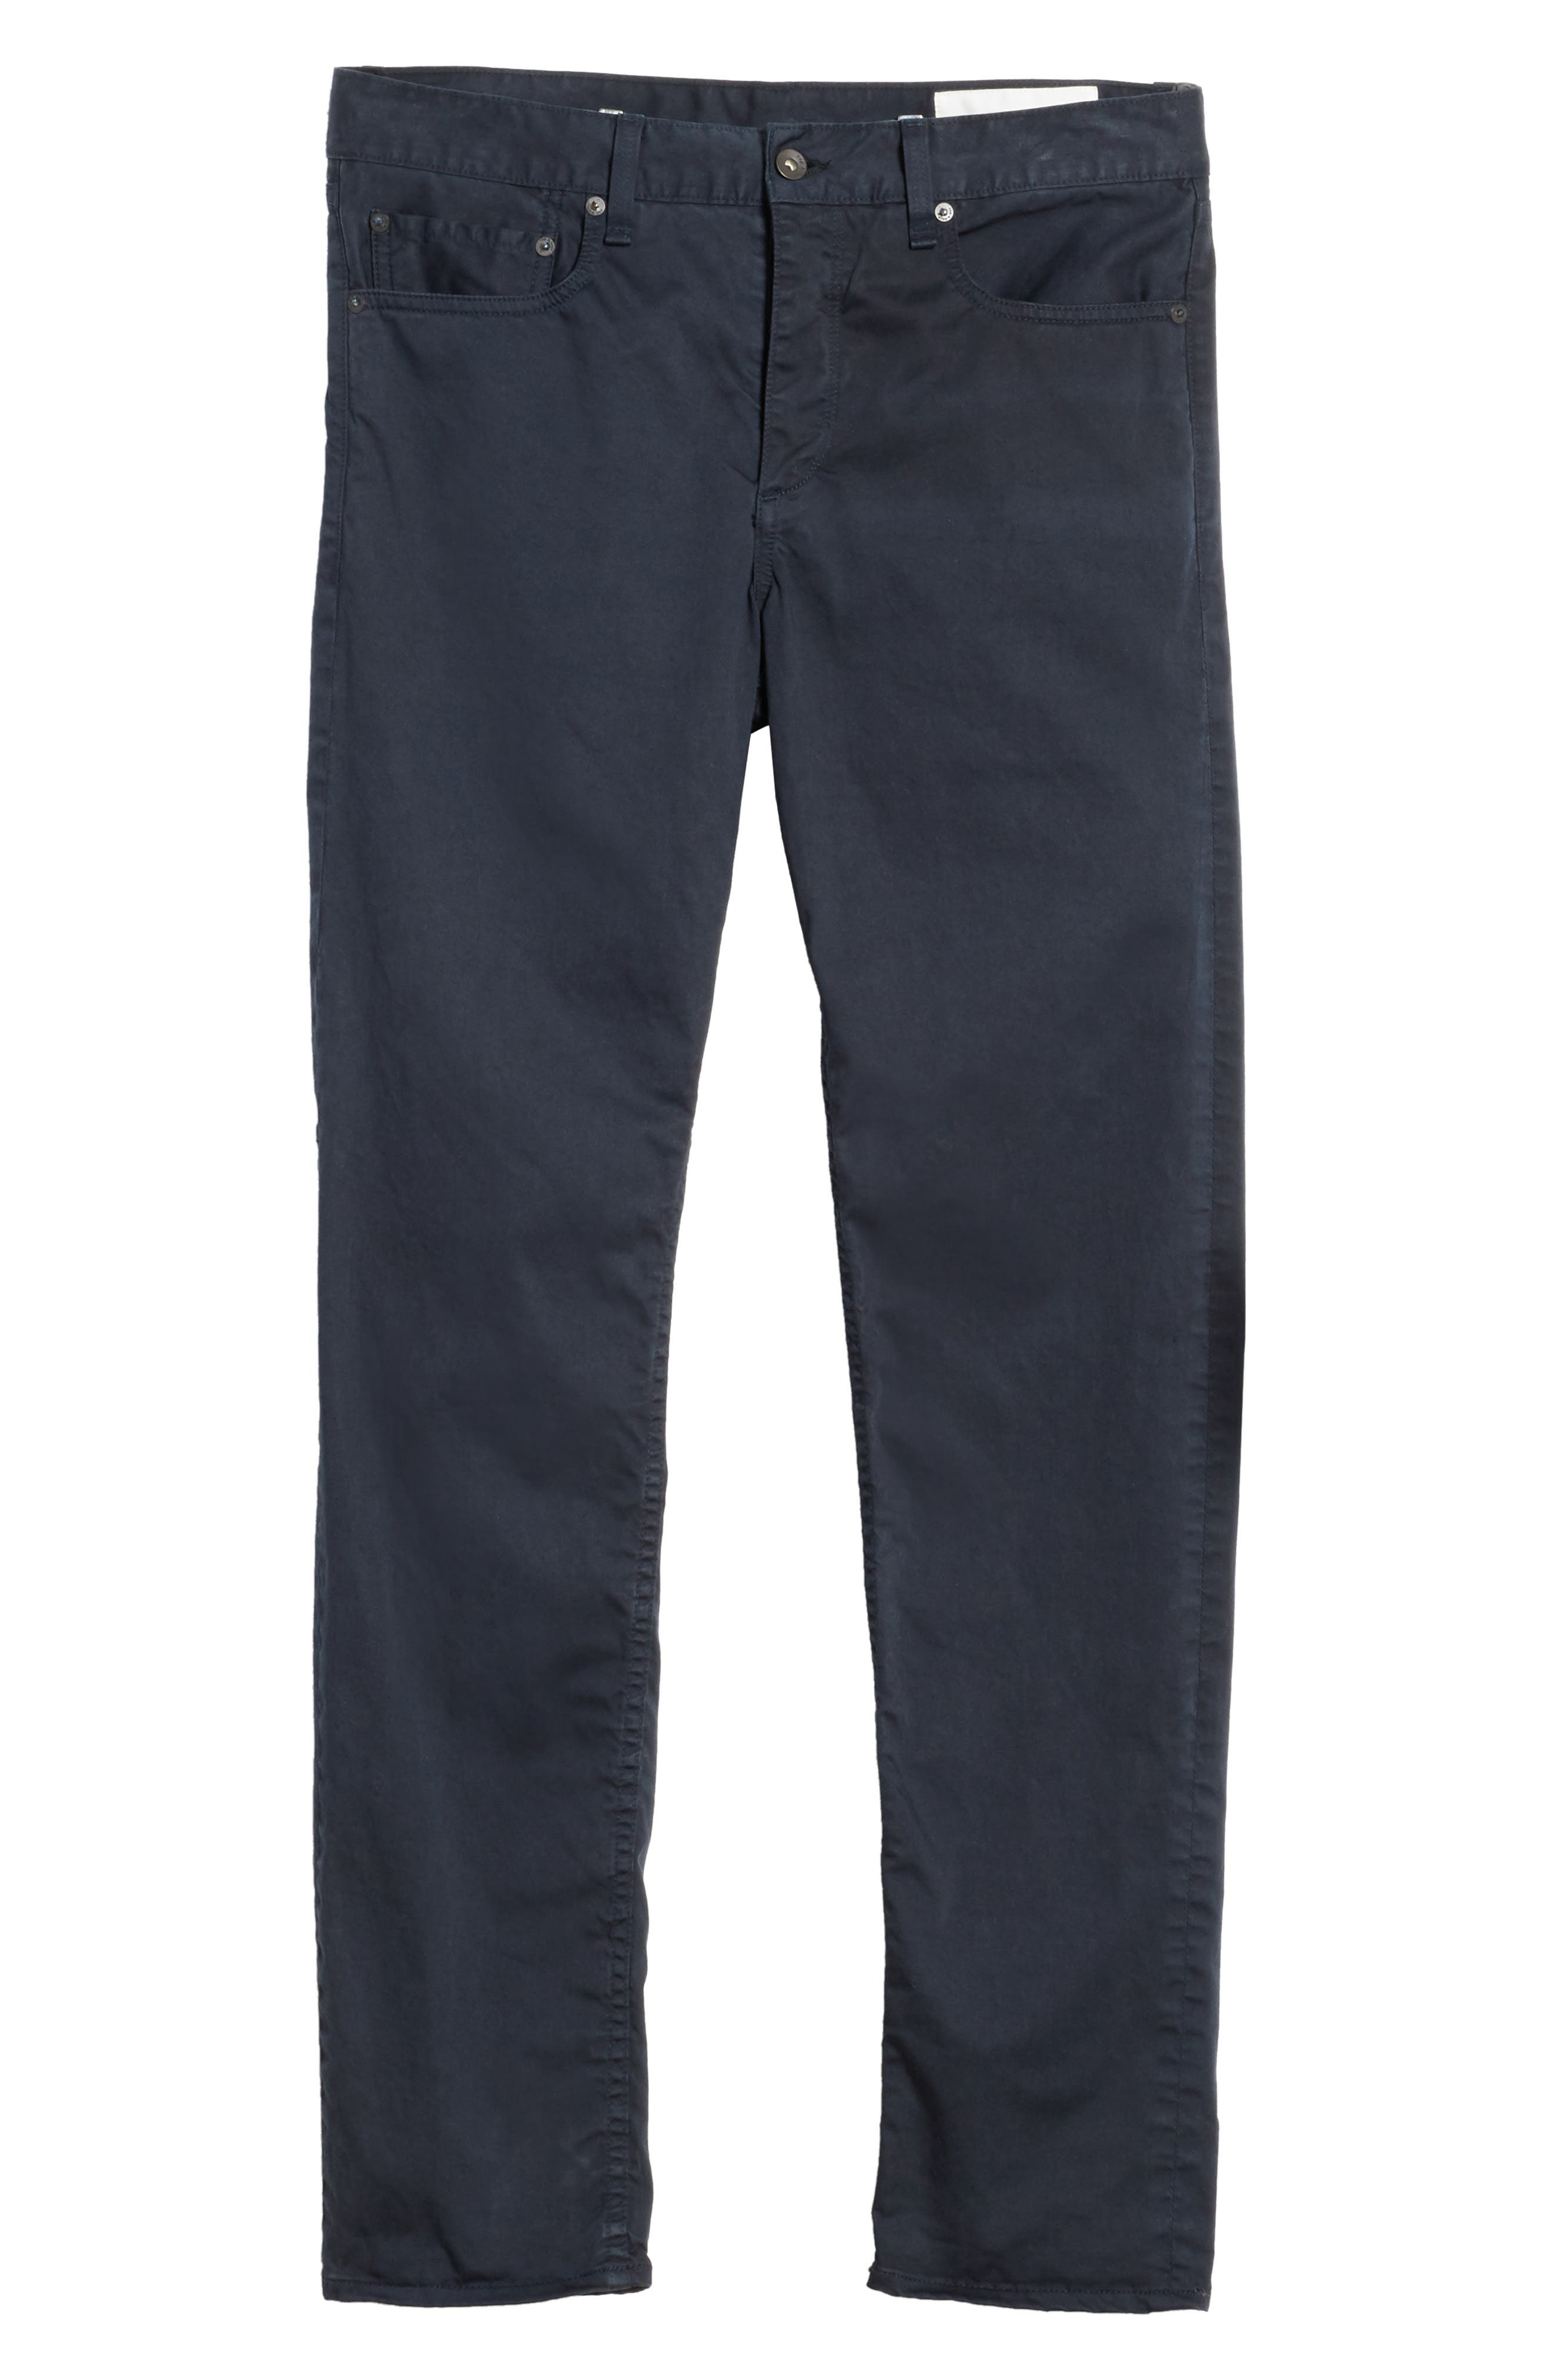 Fit 3 Twill Pants,                             Alternate thumbnail 6, color,                             410